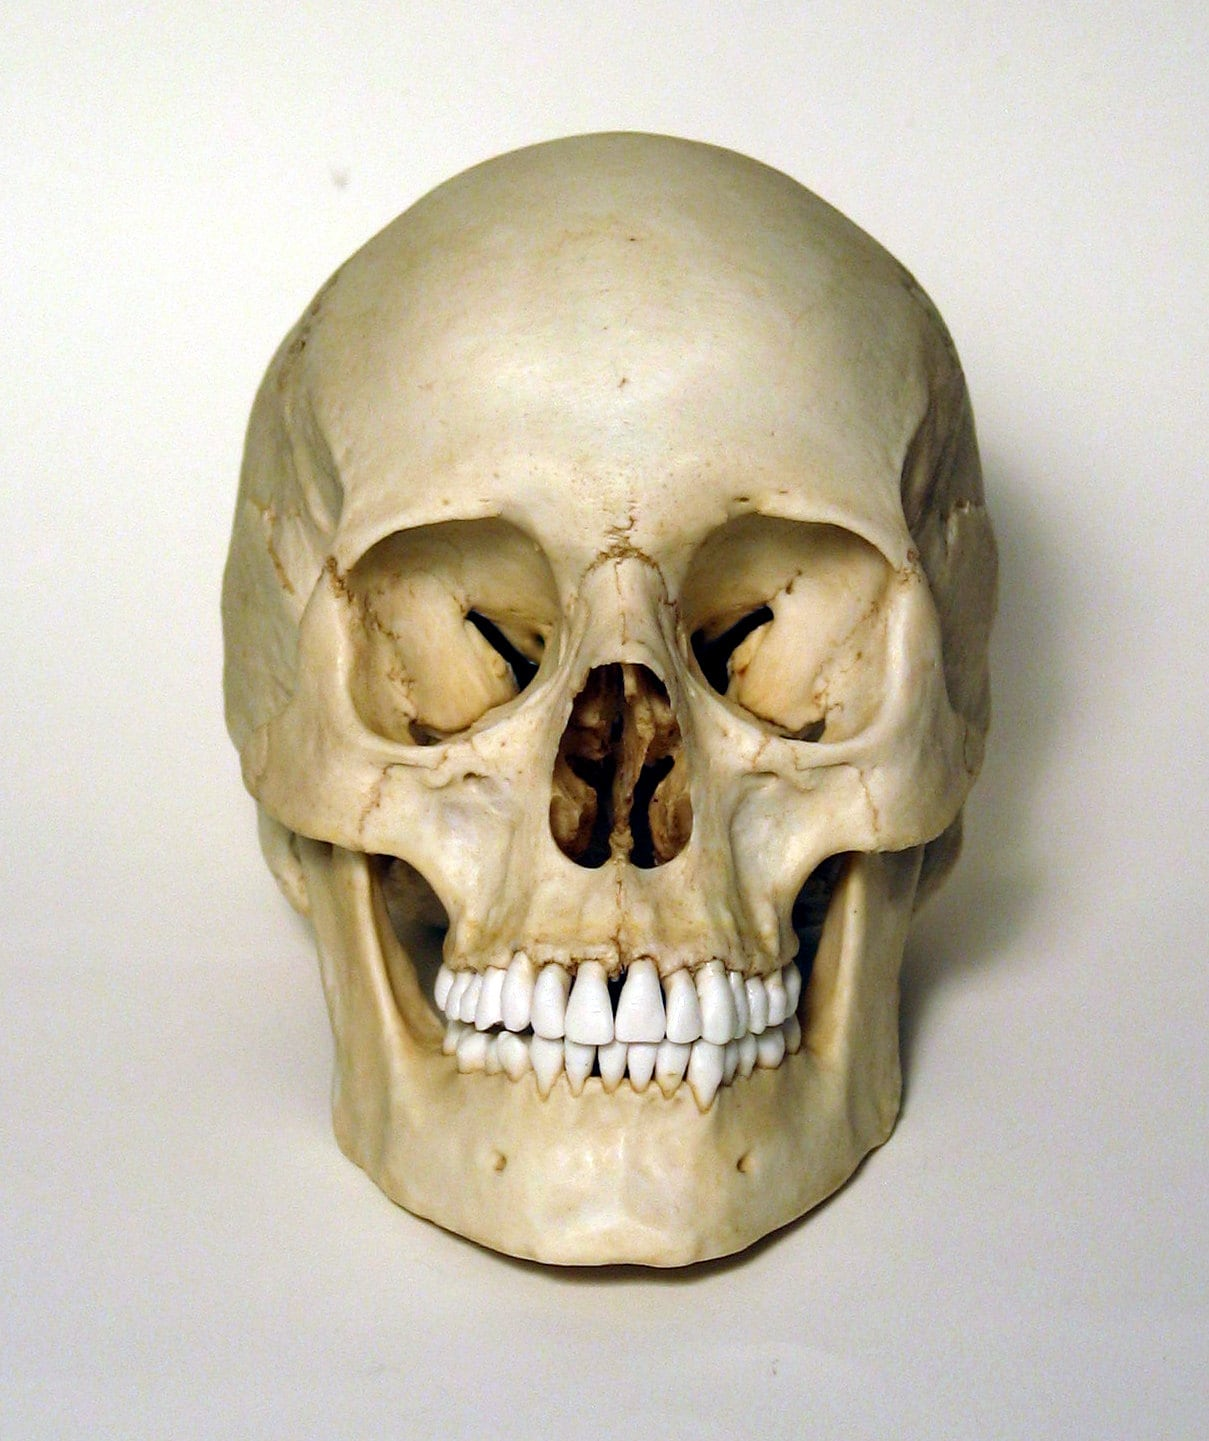 Human Skull Human Skull Driverlayer Search Engine